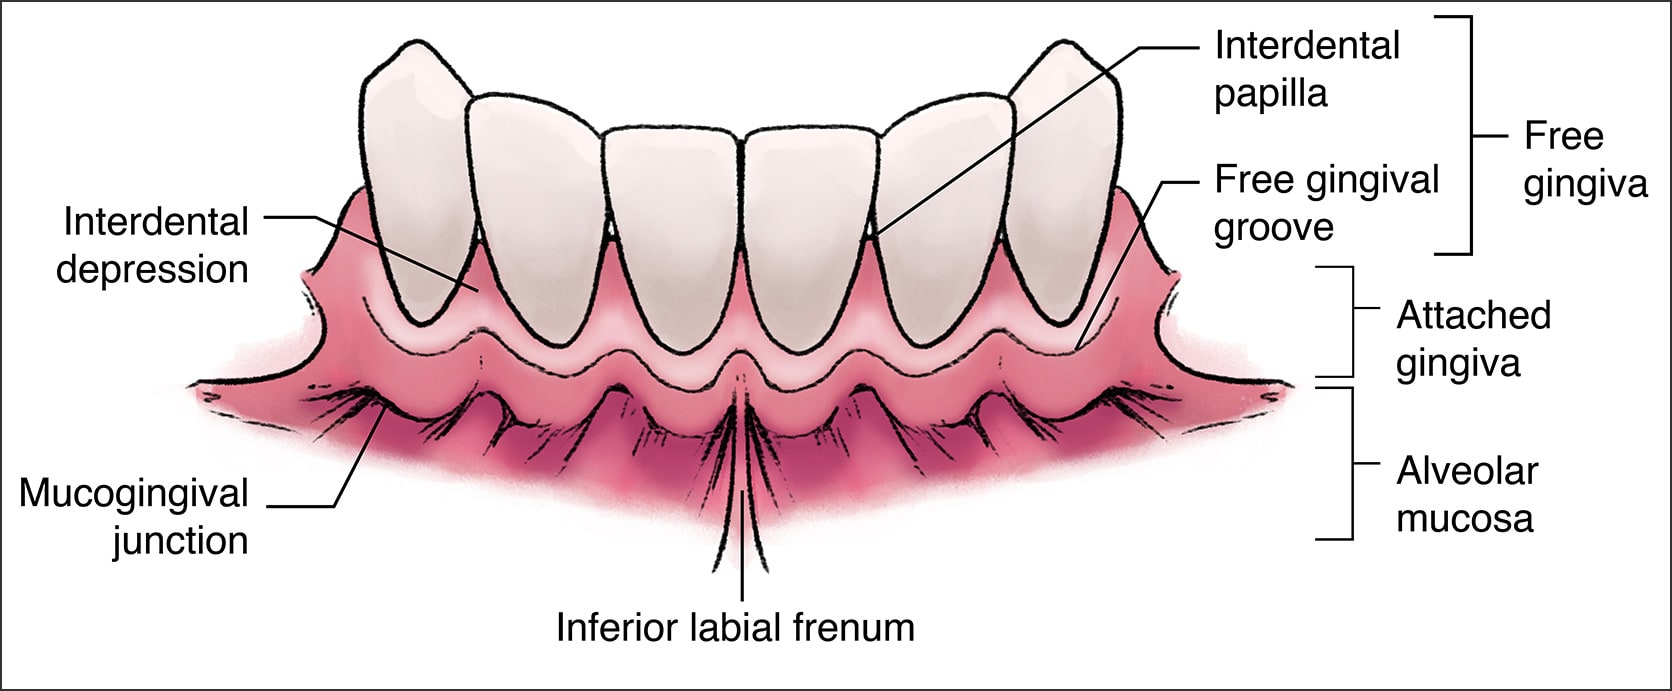 Illustration showing the components of the Gingival Unit